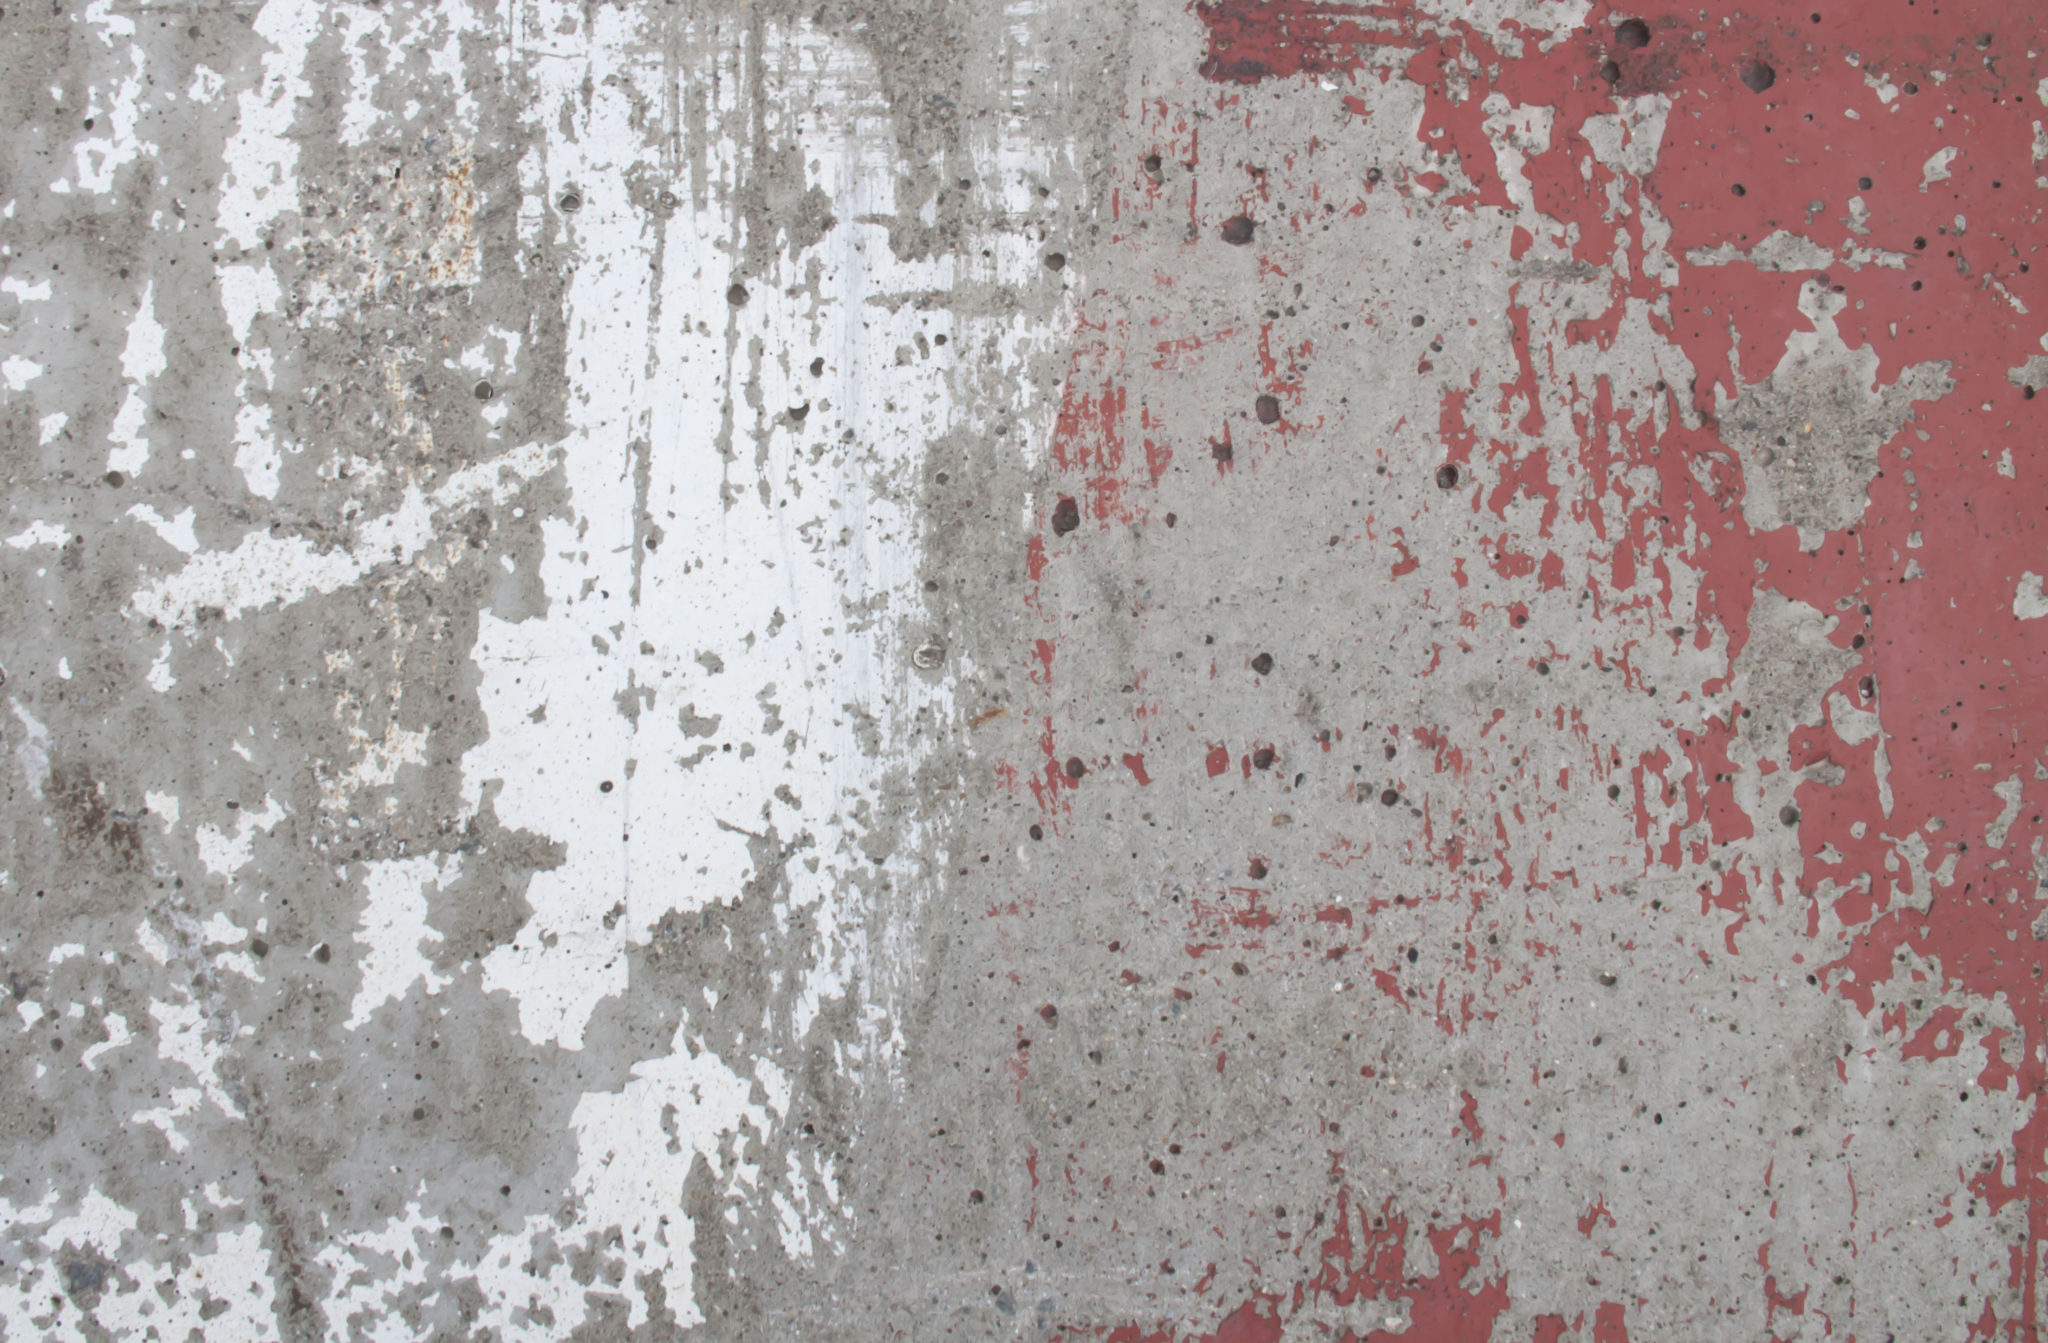 concrete photoshop textures